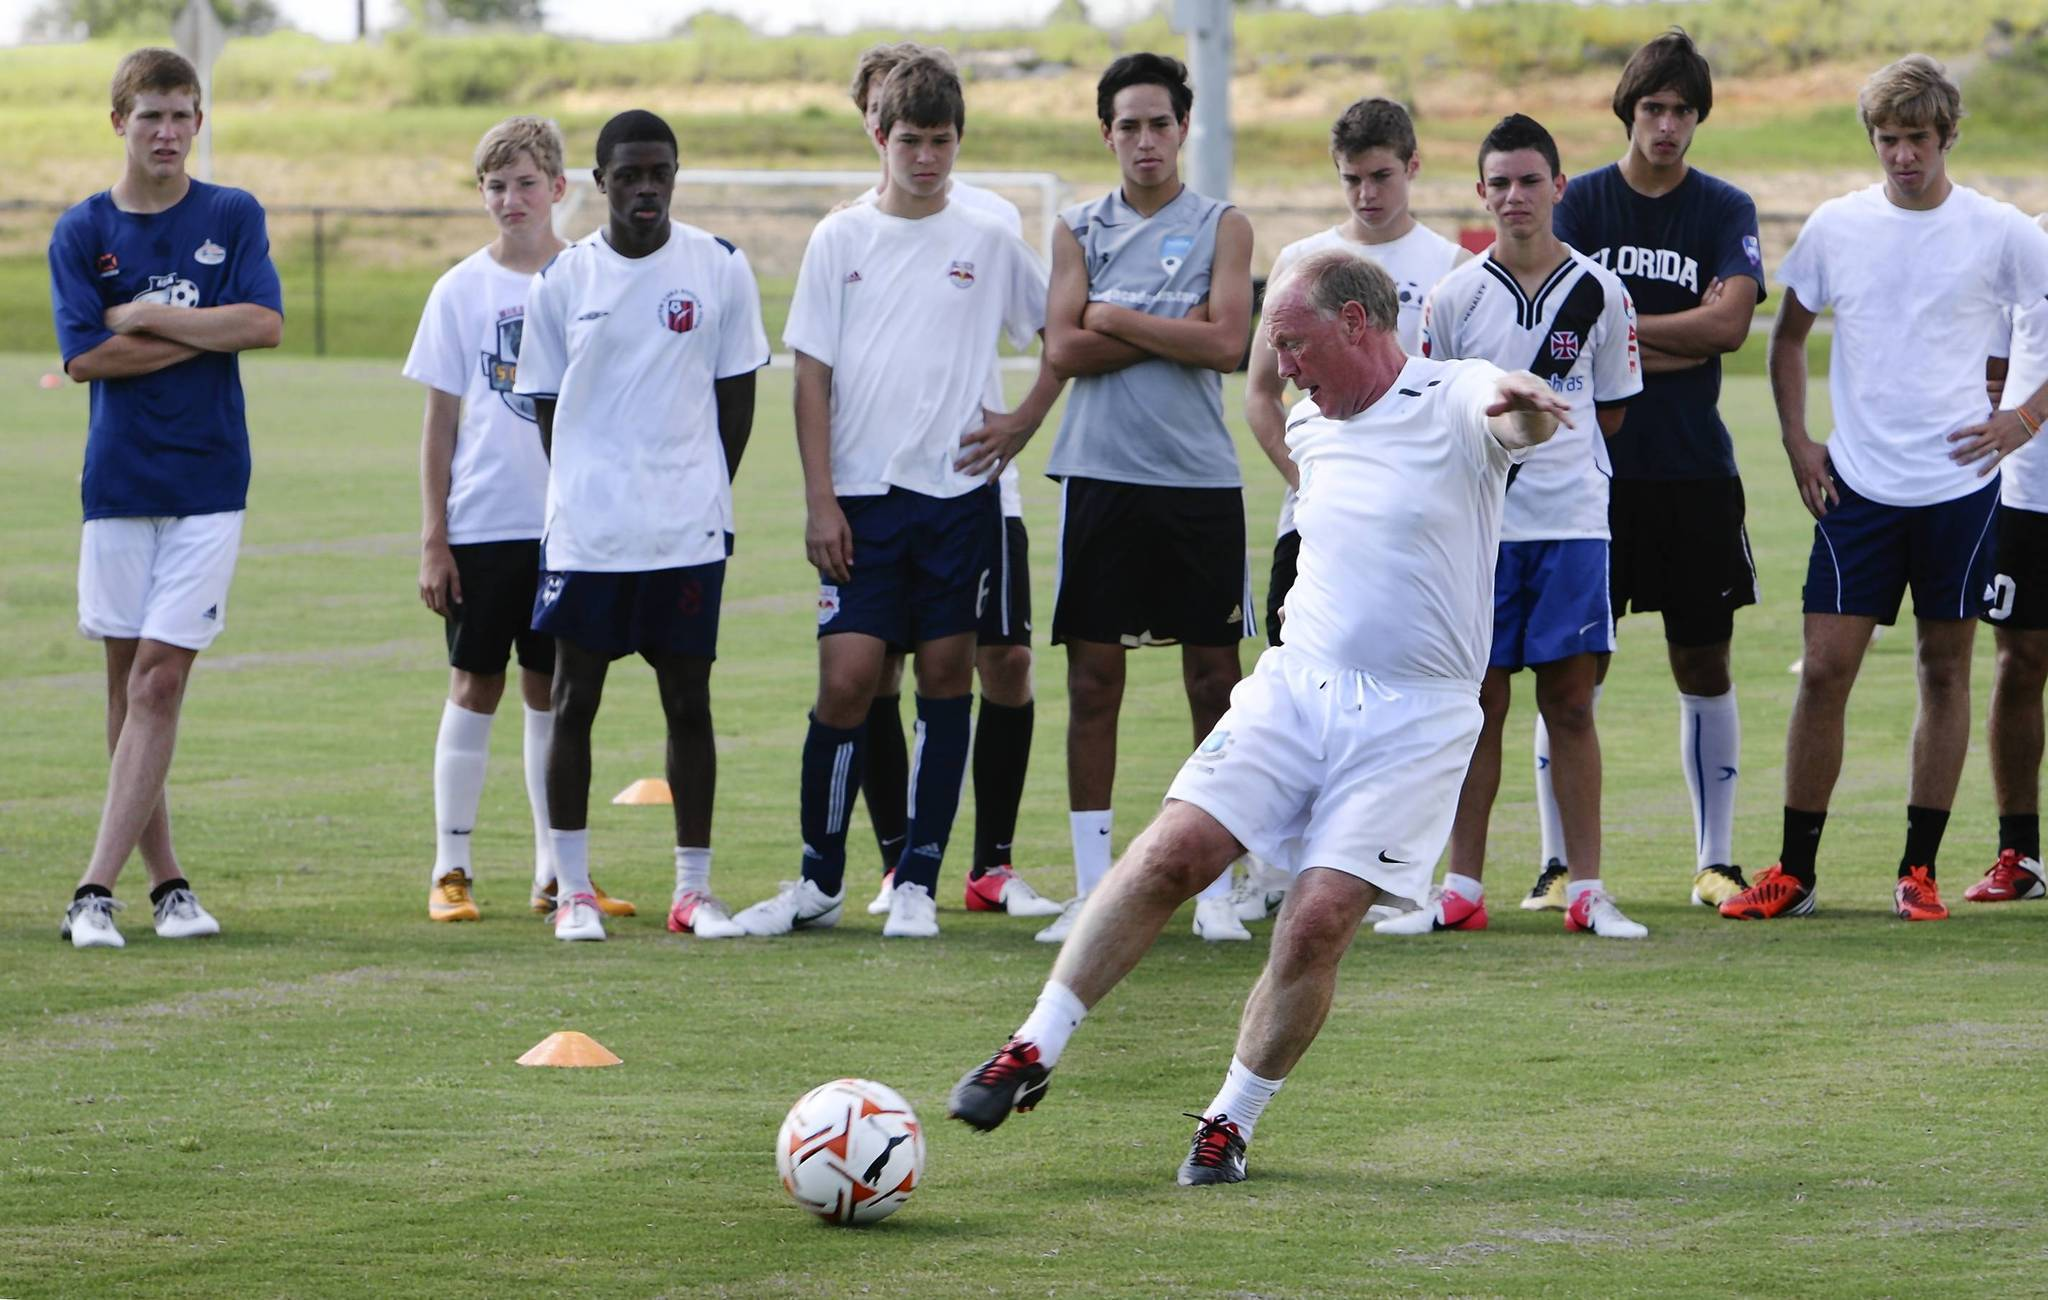 Ray Hall demonstrates technique on Wednesday, during the Caerus Soccer Academy camp at the National Training Center in Clermont. The camp is headed by  Hall, who has been instrumental in recruiting and developing some of the most gifted soccer players to emerge in Europe. (Tom Benitez/Orlando Sentinel)